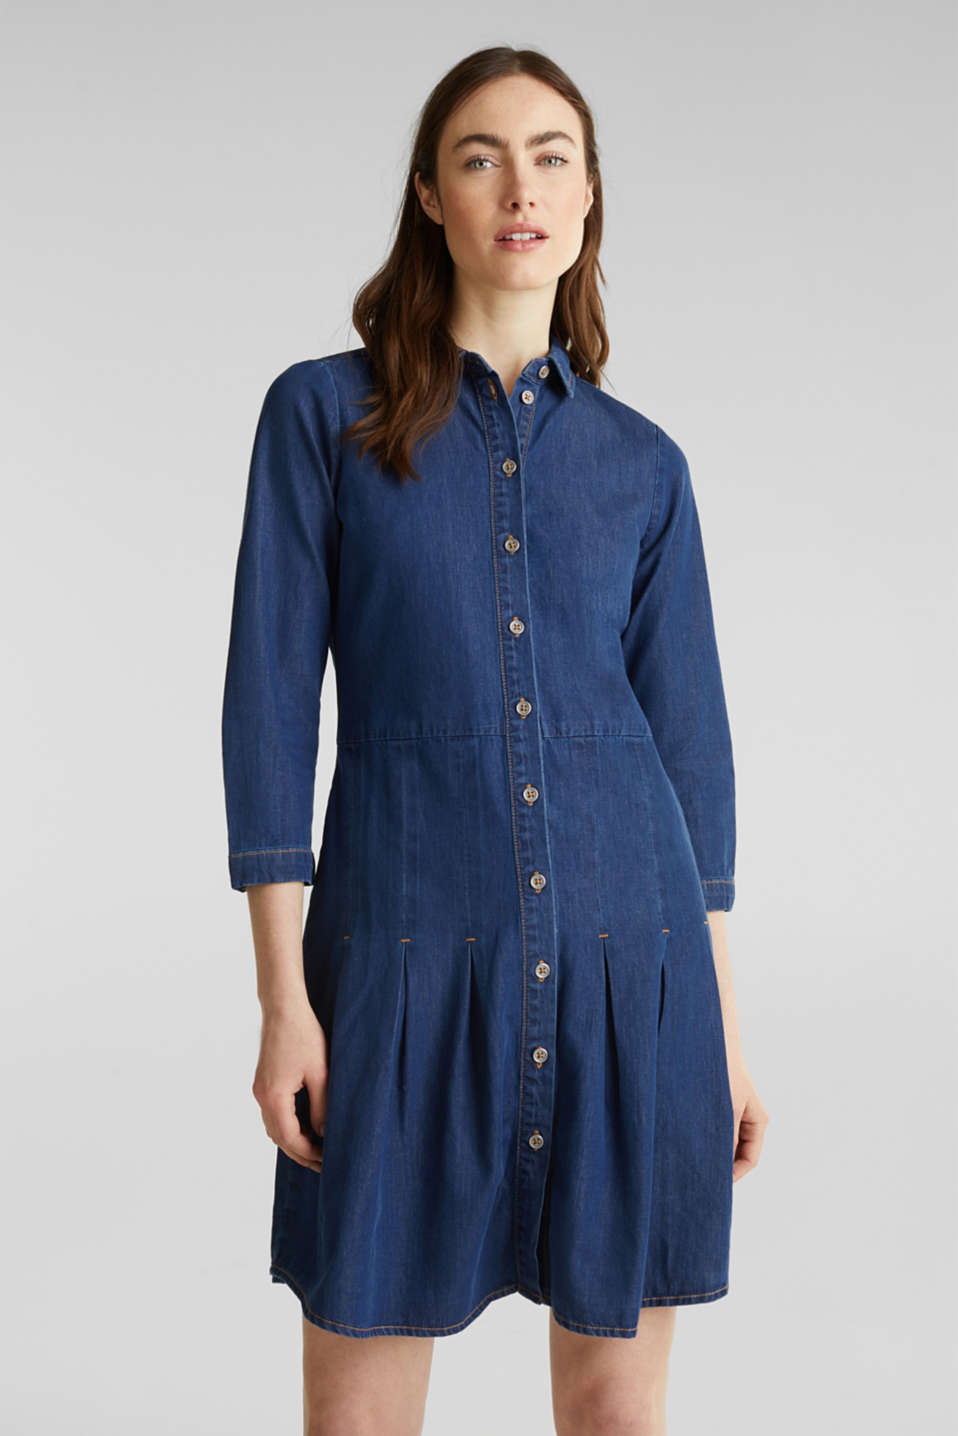 Esprit - Denim jurk, 100% organic cotton